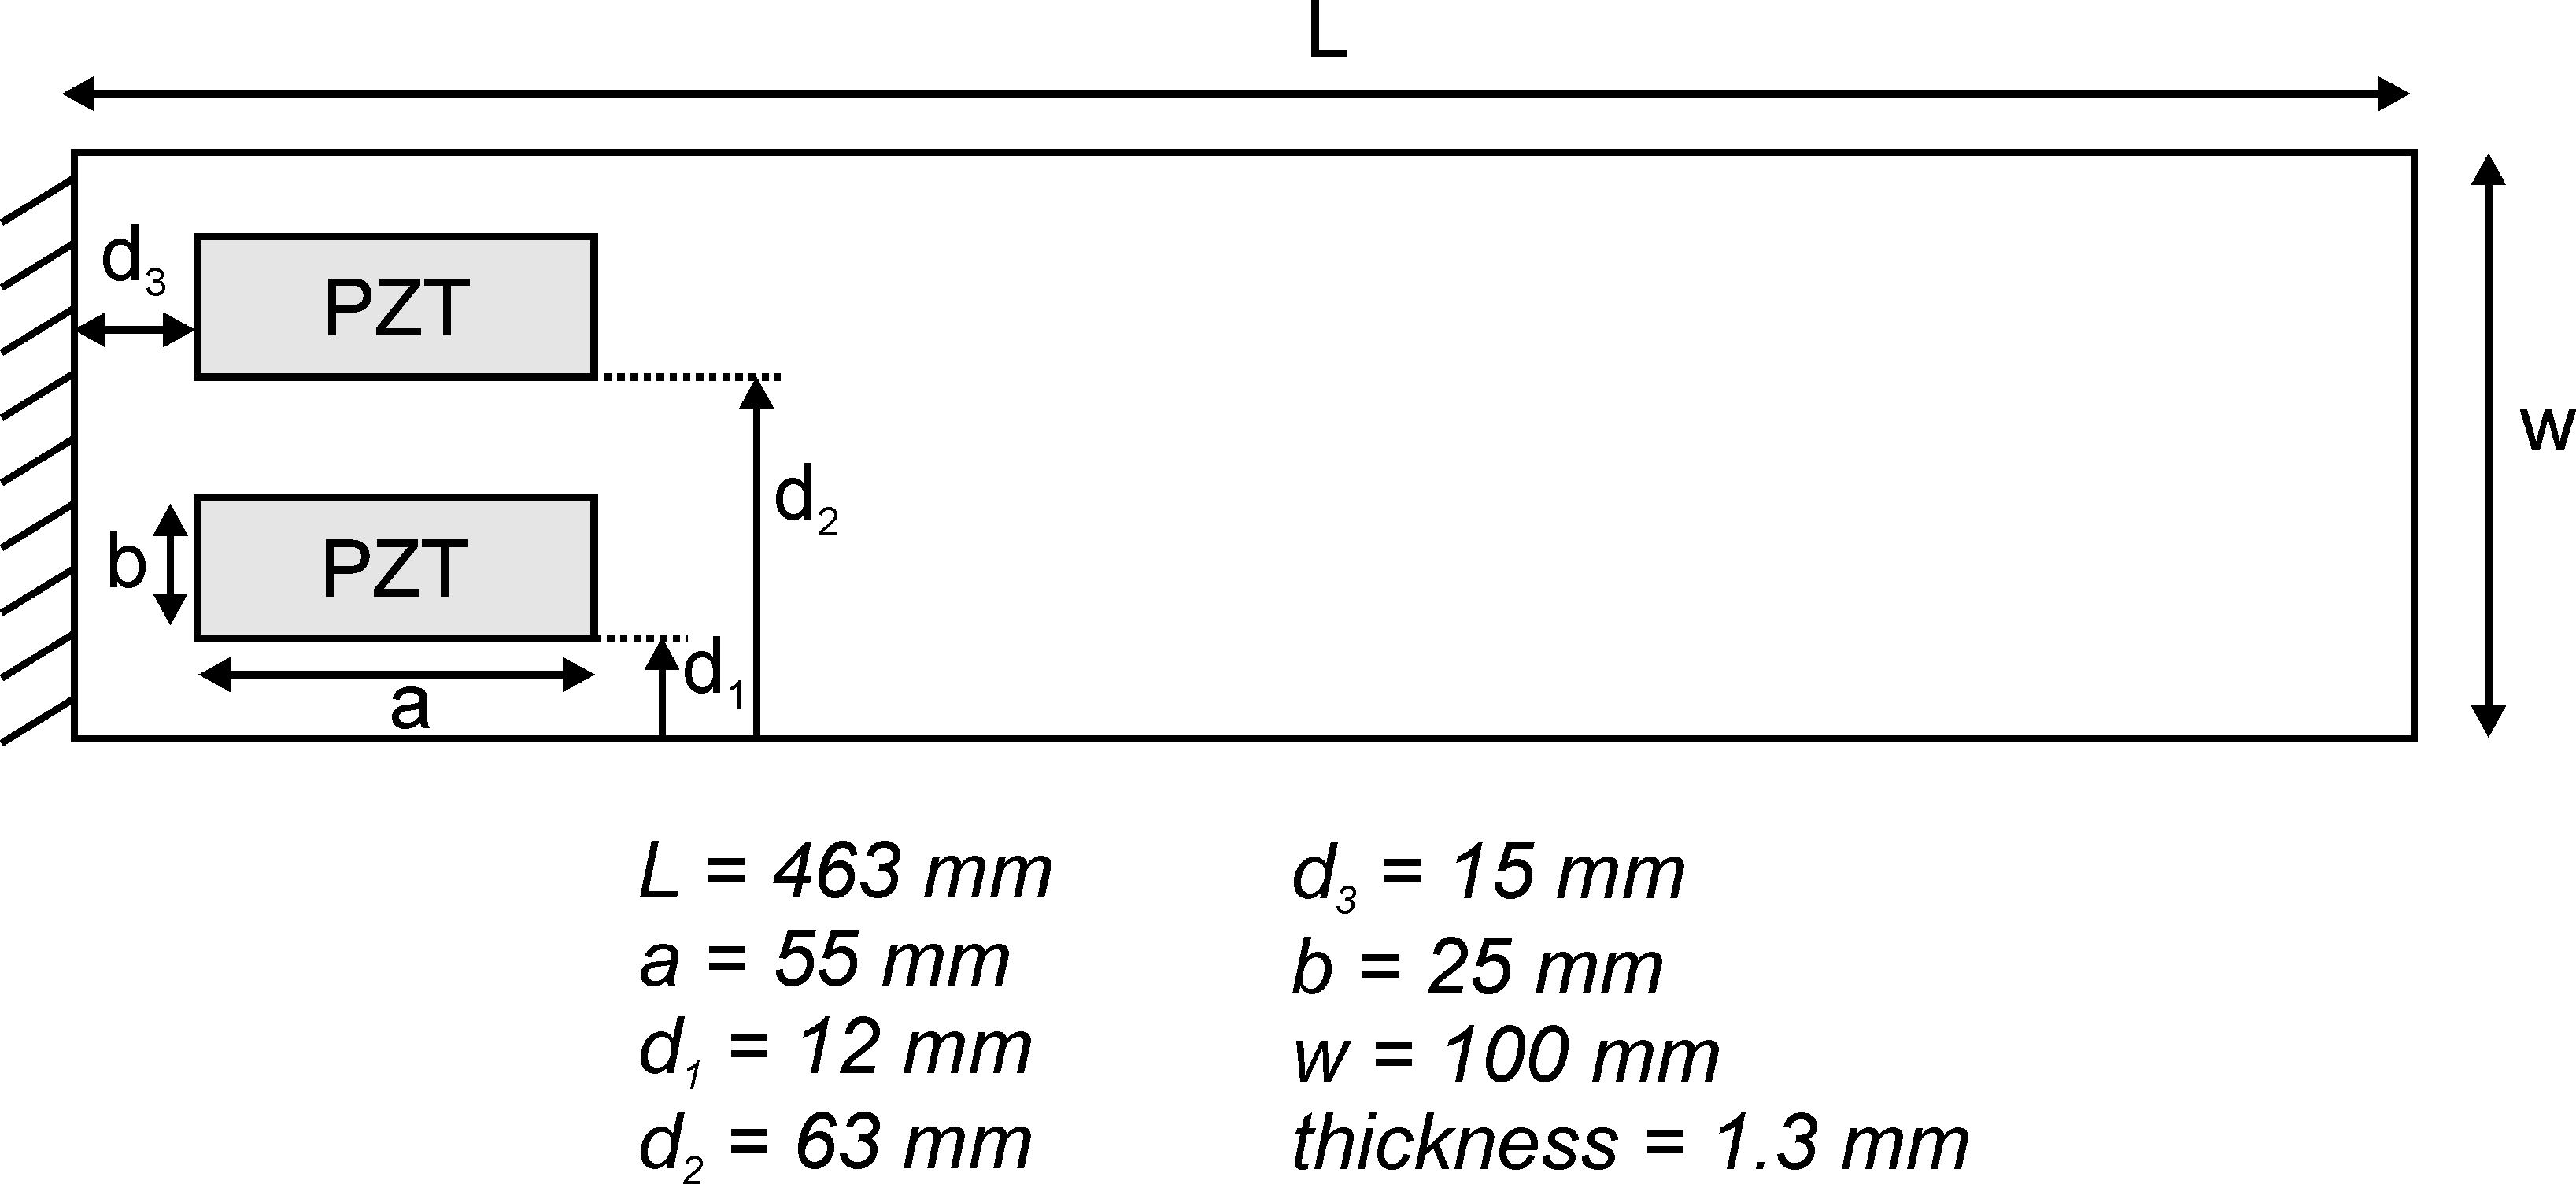 Composite plate with 4 piezoelectric patches